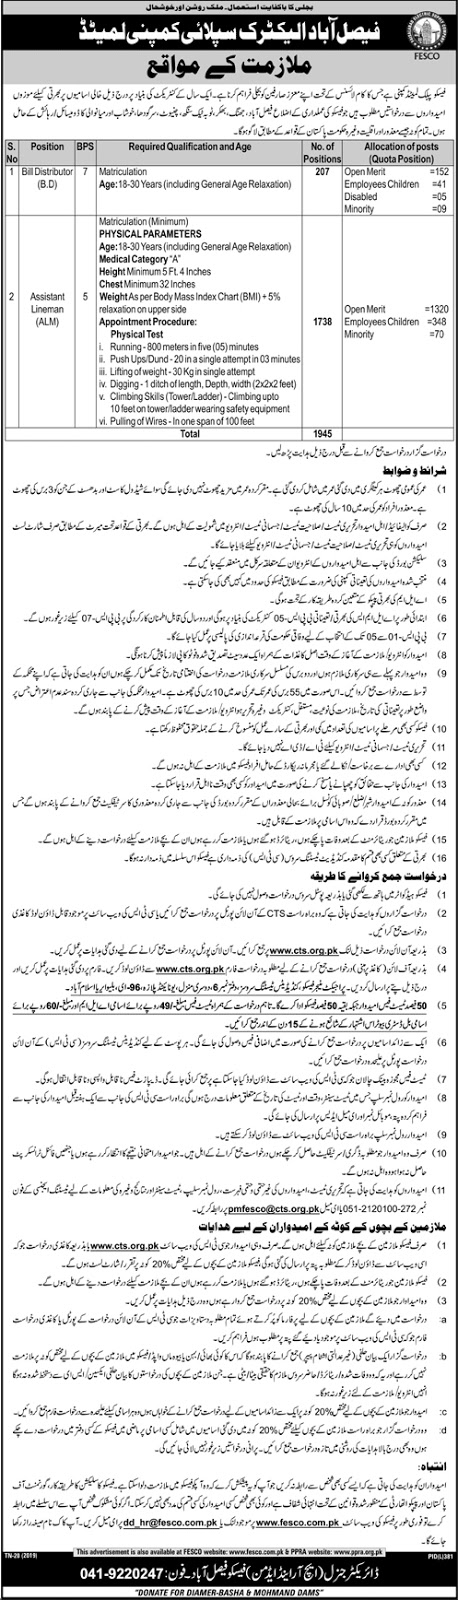 Jobs in Fesco, Faisalabad Electric Supply Company FESCO Jobs 2019 August